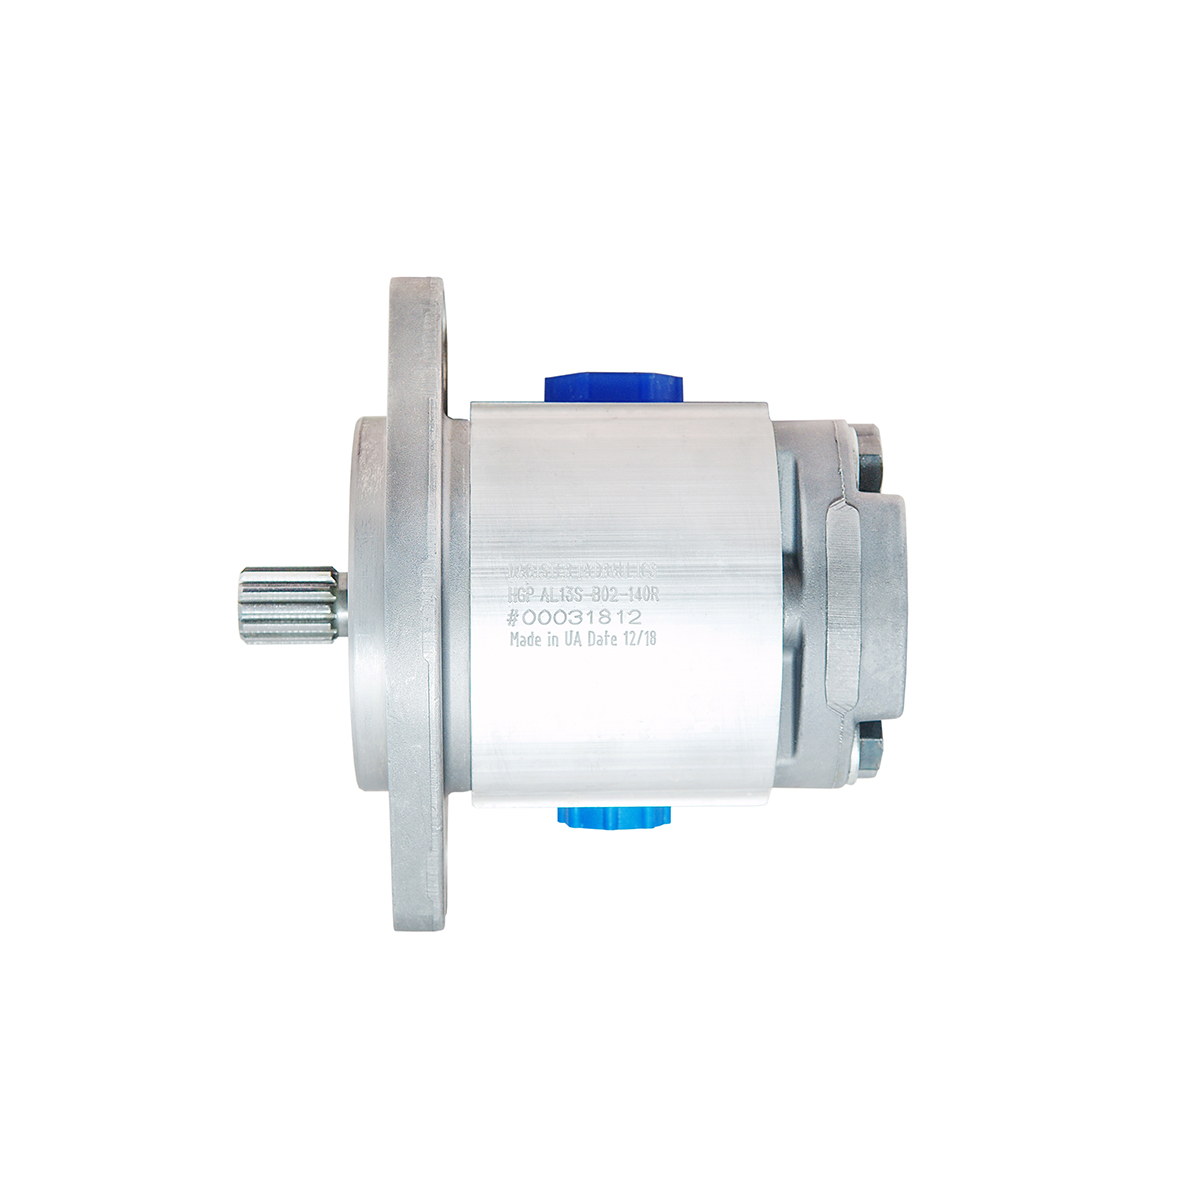 1.40 CID hydraulic gear pump, 13 tooth spline shaft counter-clockwise gear pump | Magister Hydraulics